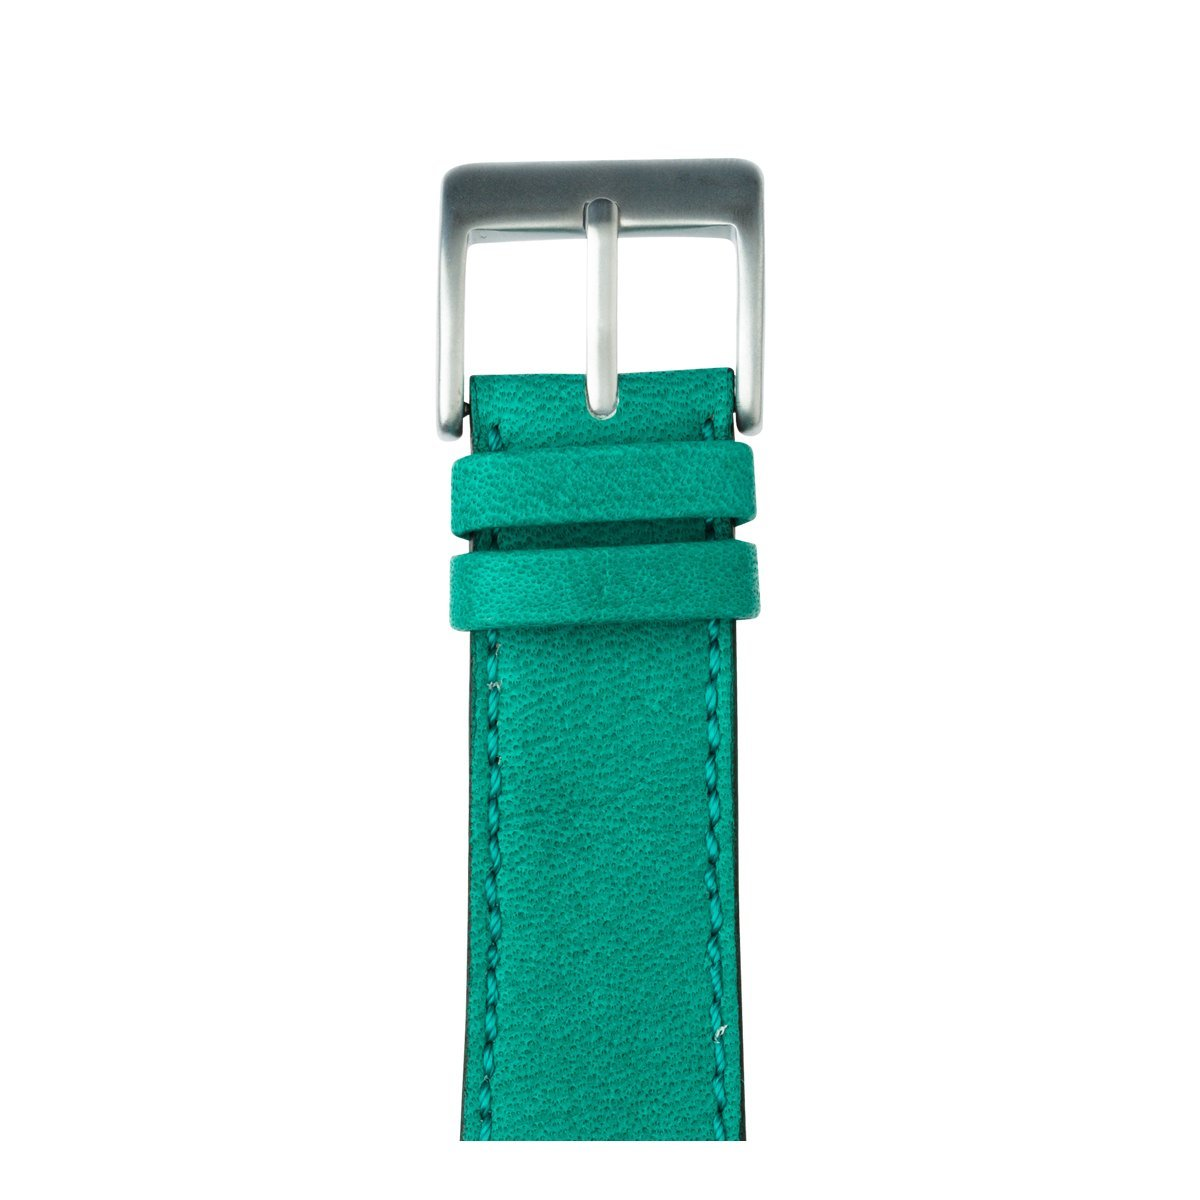 Roobaya Premium Sauvage Leather Apple Watch Band in Turquoise | Includes Adapters matching the Color of the Apple Watch, Case Color Silver Aluminum, Size:38 mm